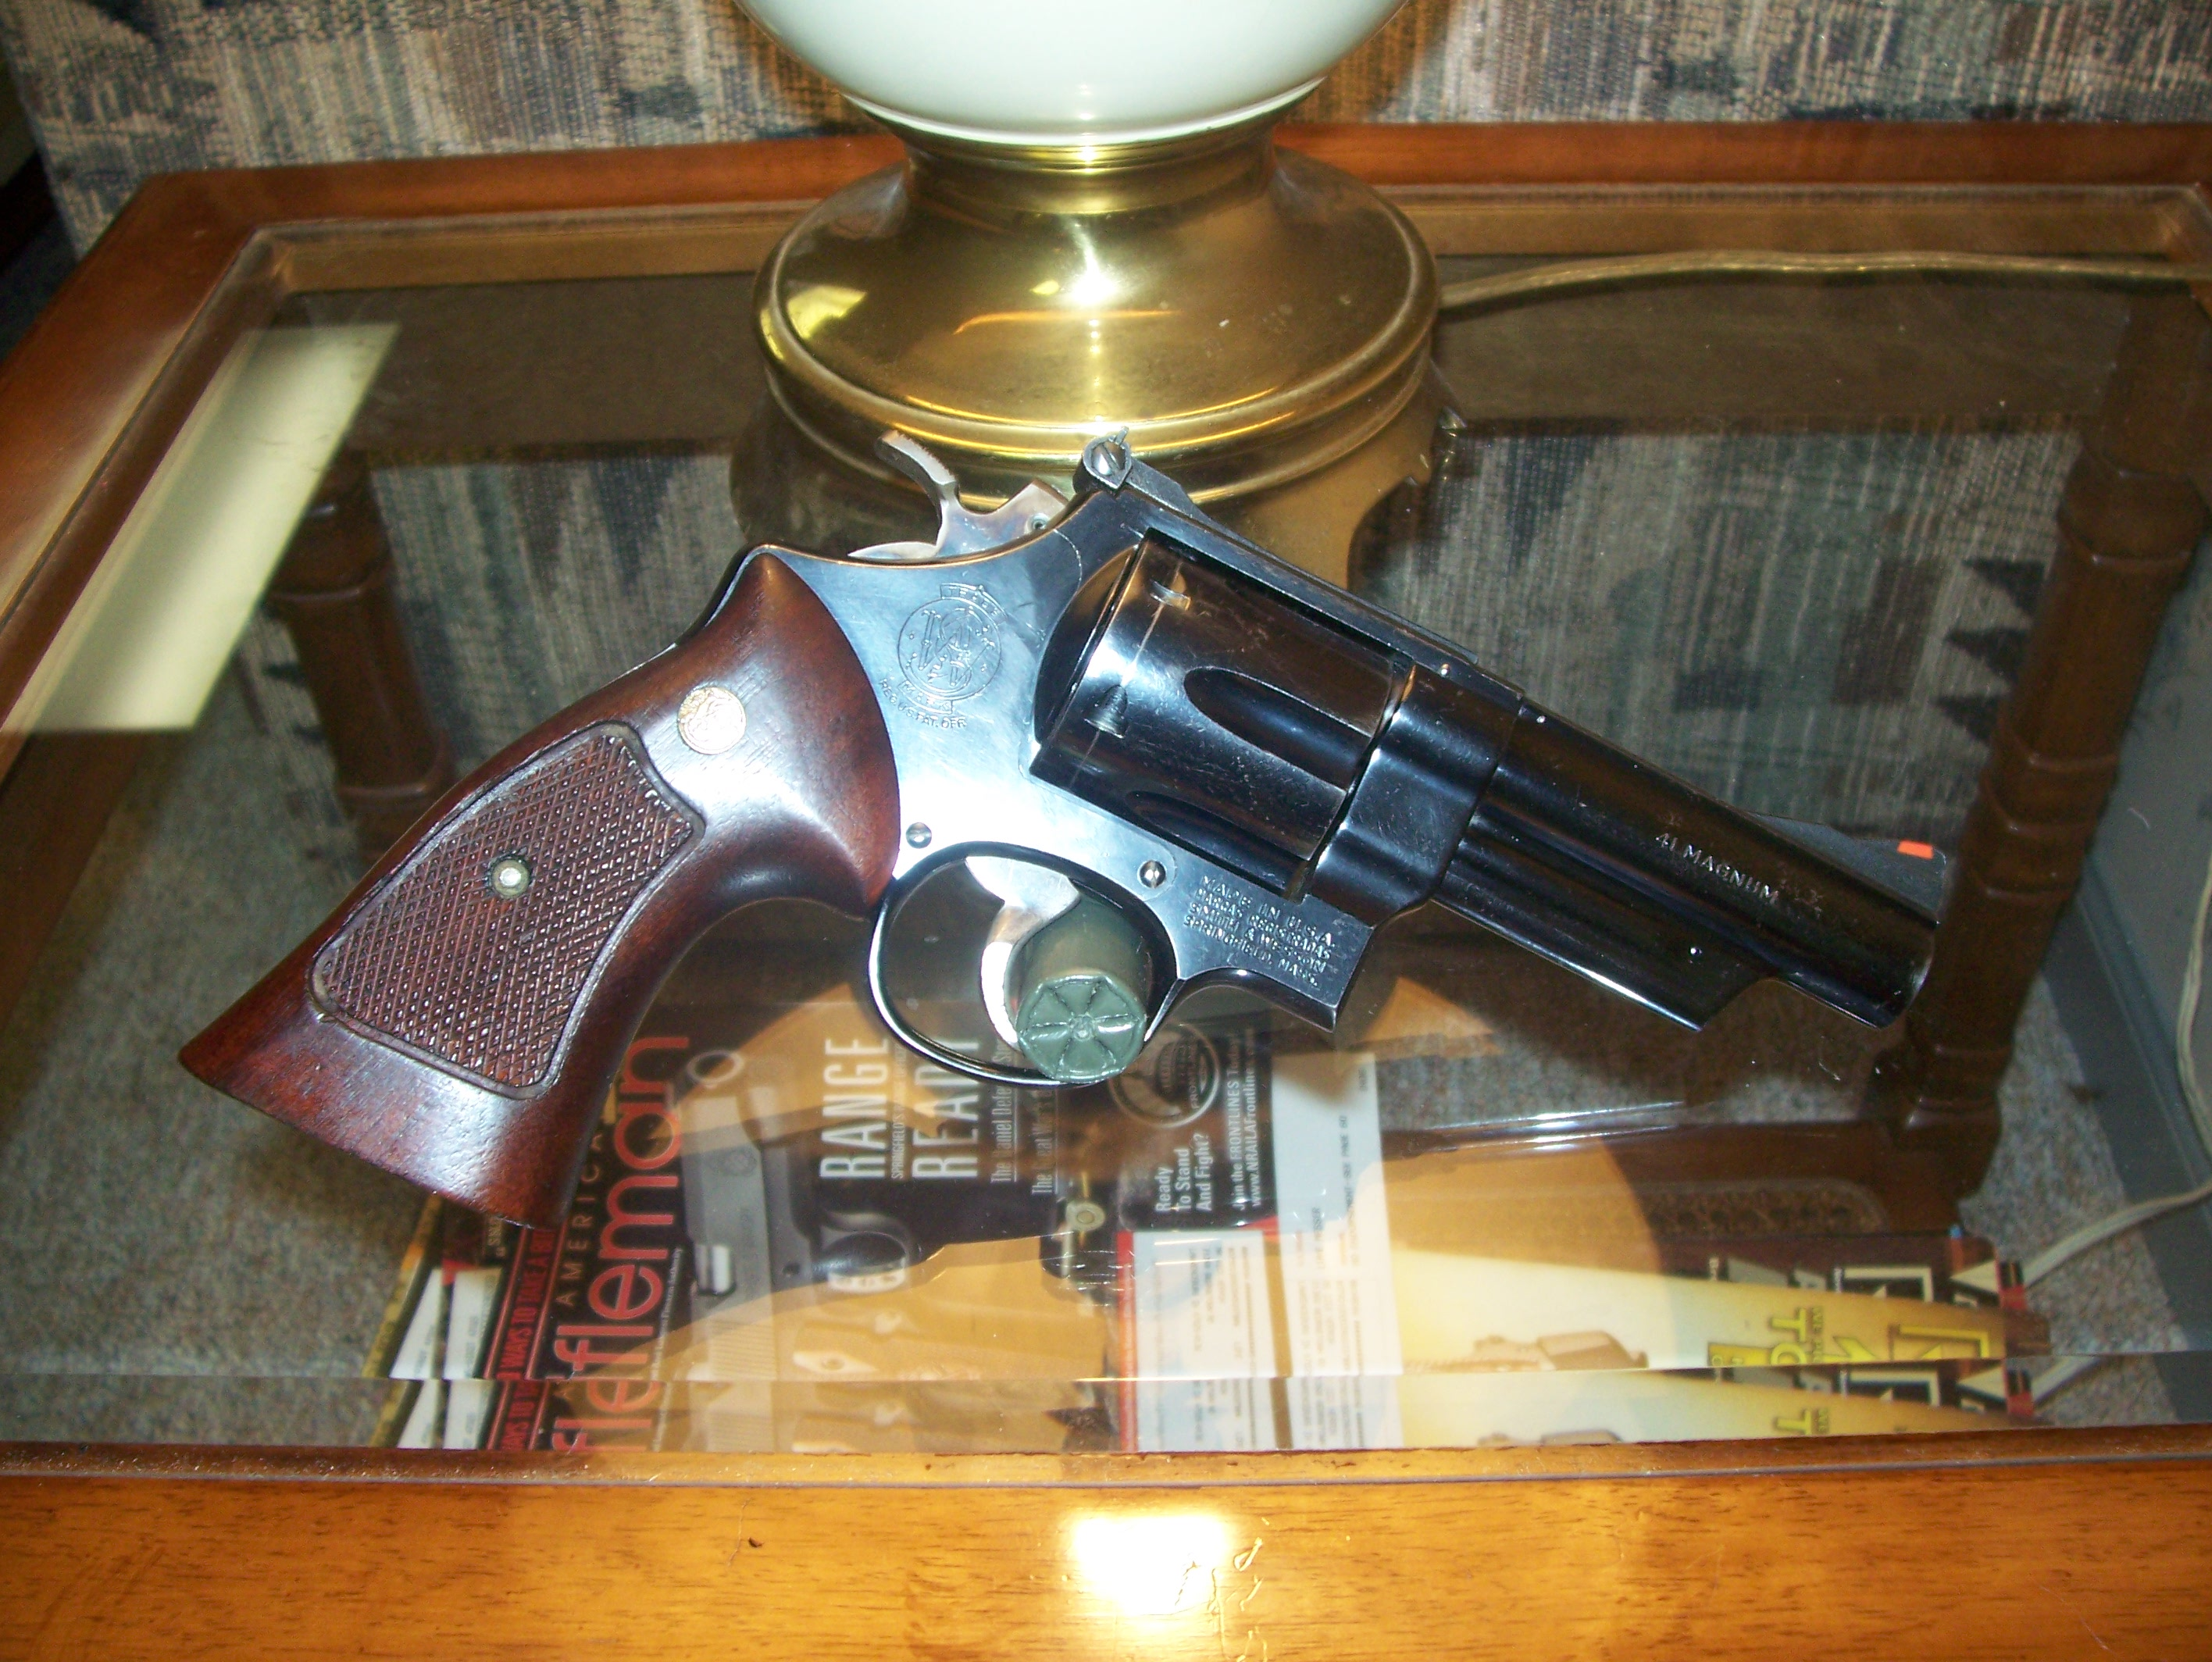 What is the most powerful revolver you own? - Page 5